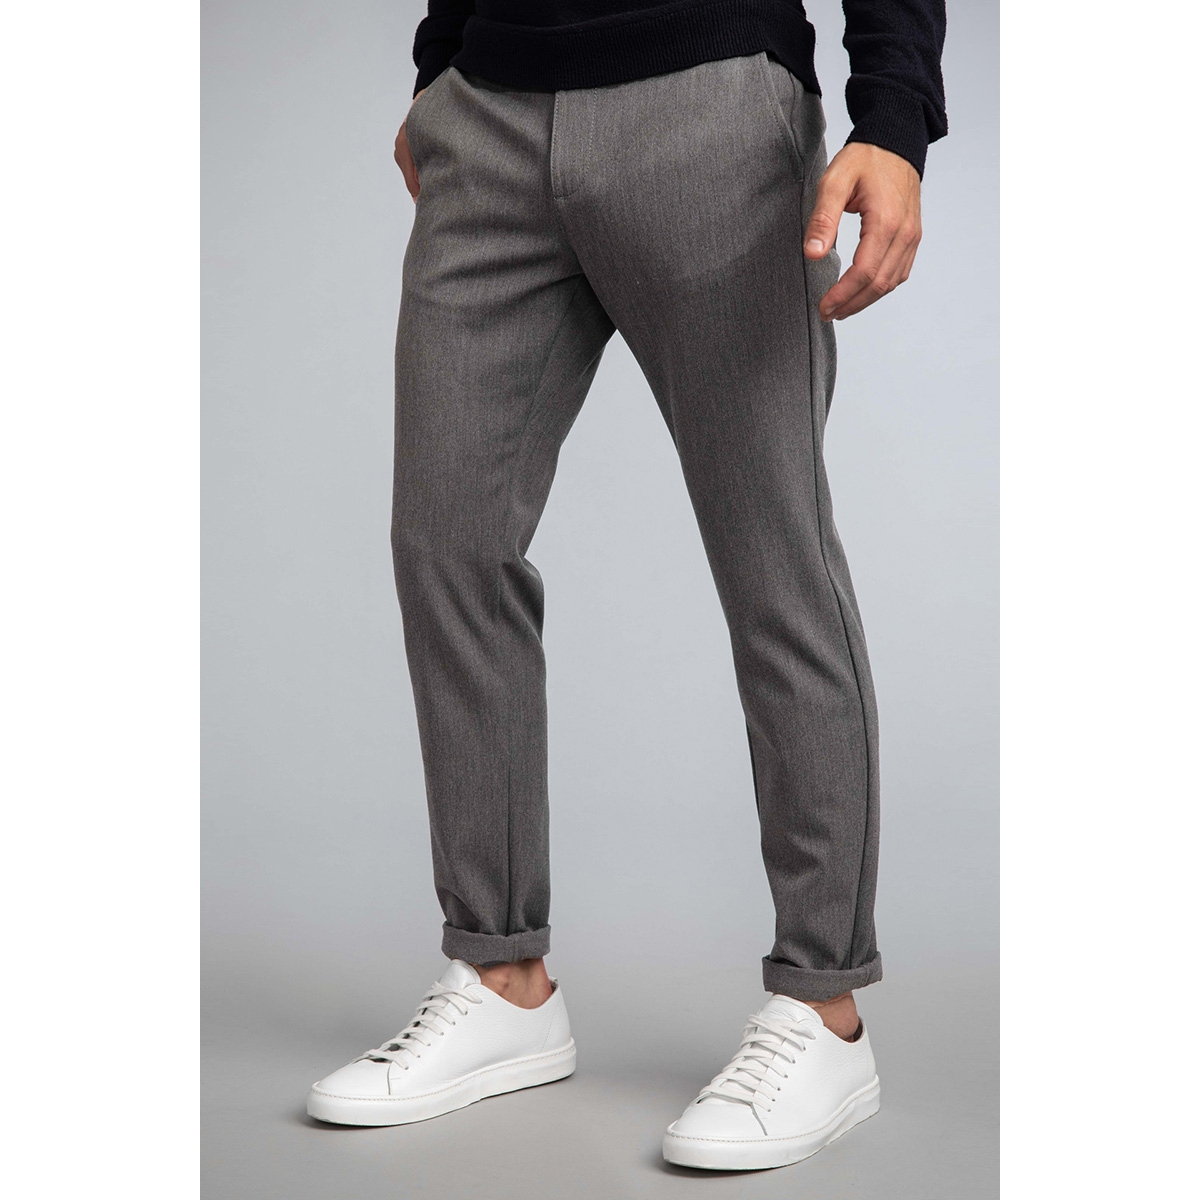 henry 8989112 new in town broek 272